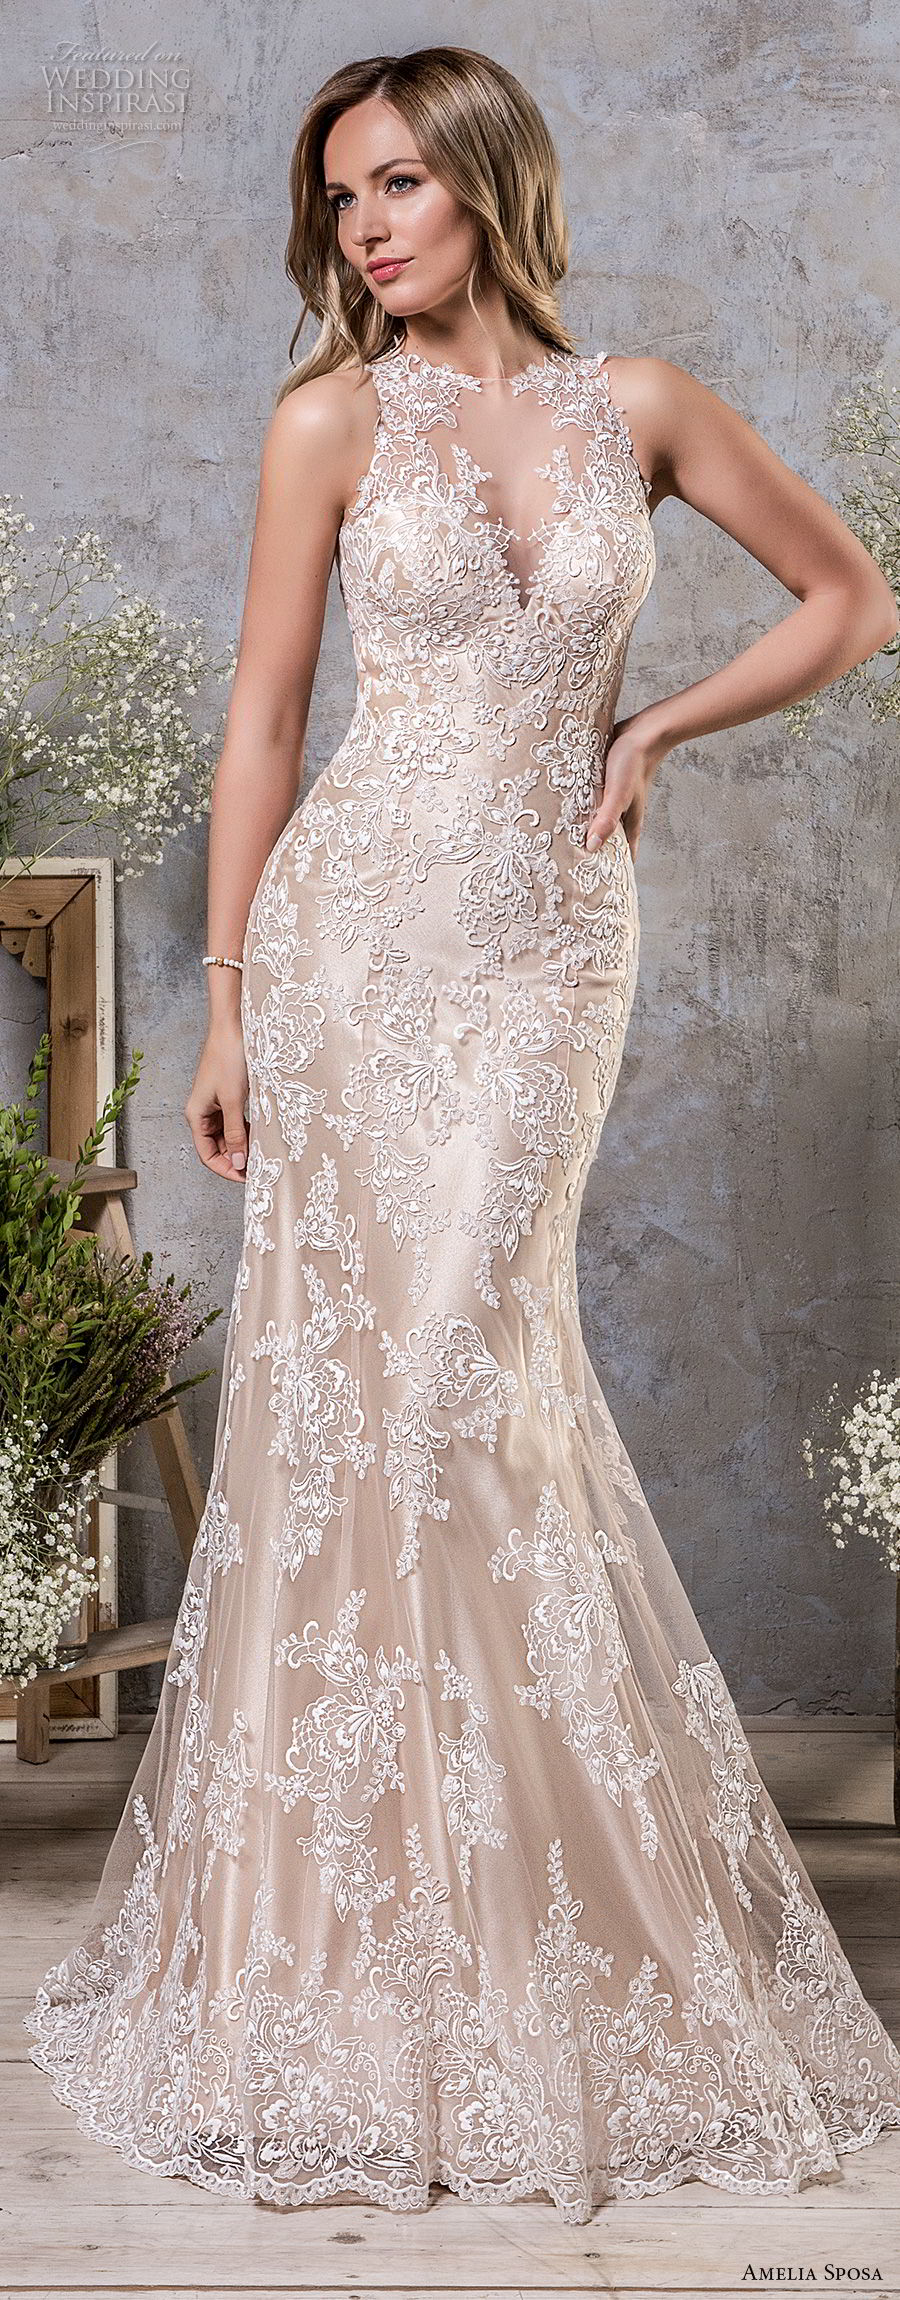 amelia sposa fall 2018 bridal sleeveless illusion jewel sweetheart neckline full embellishment elegant champagne color trumpet wedding dress covered lace back sweep train (2) mv